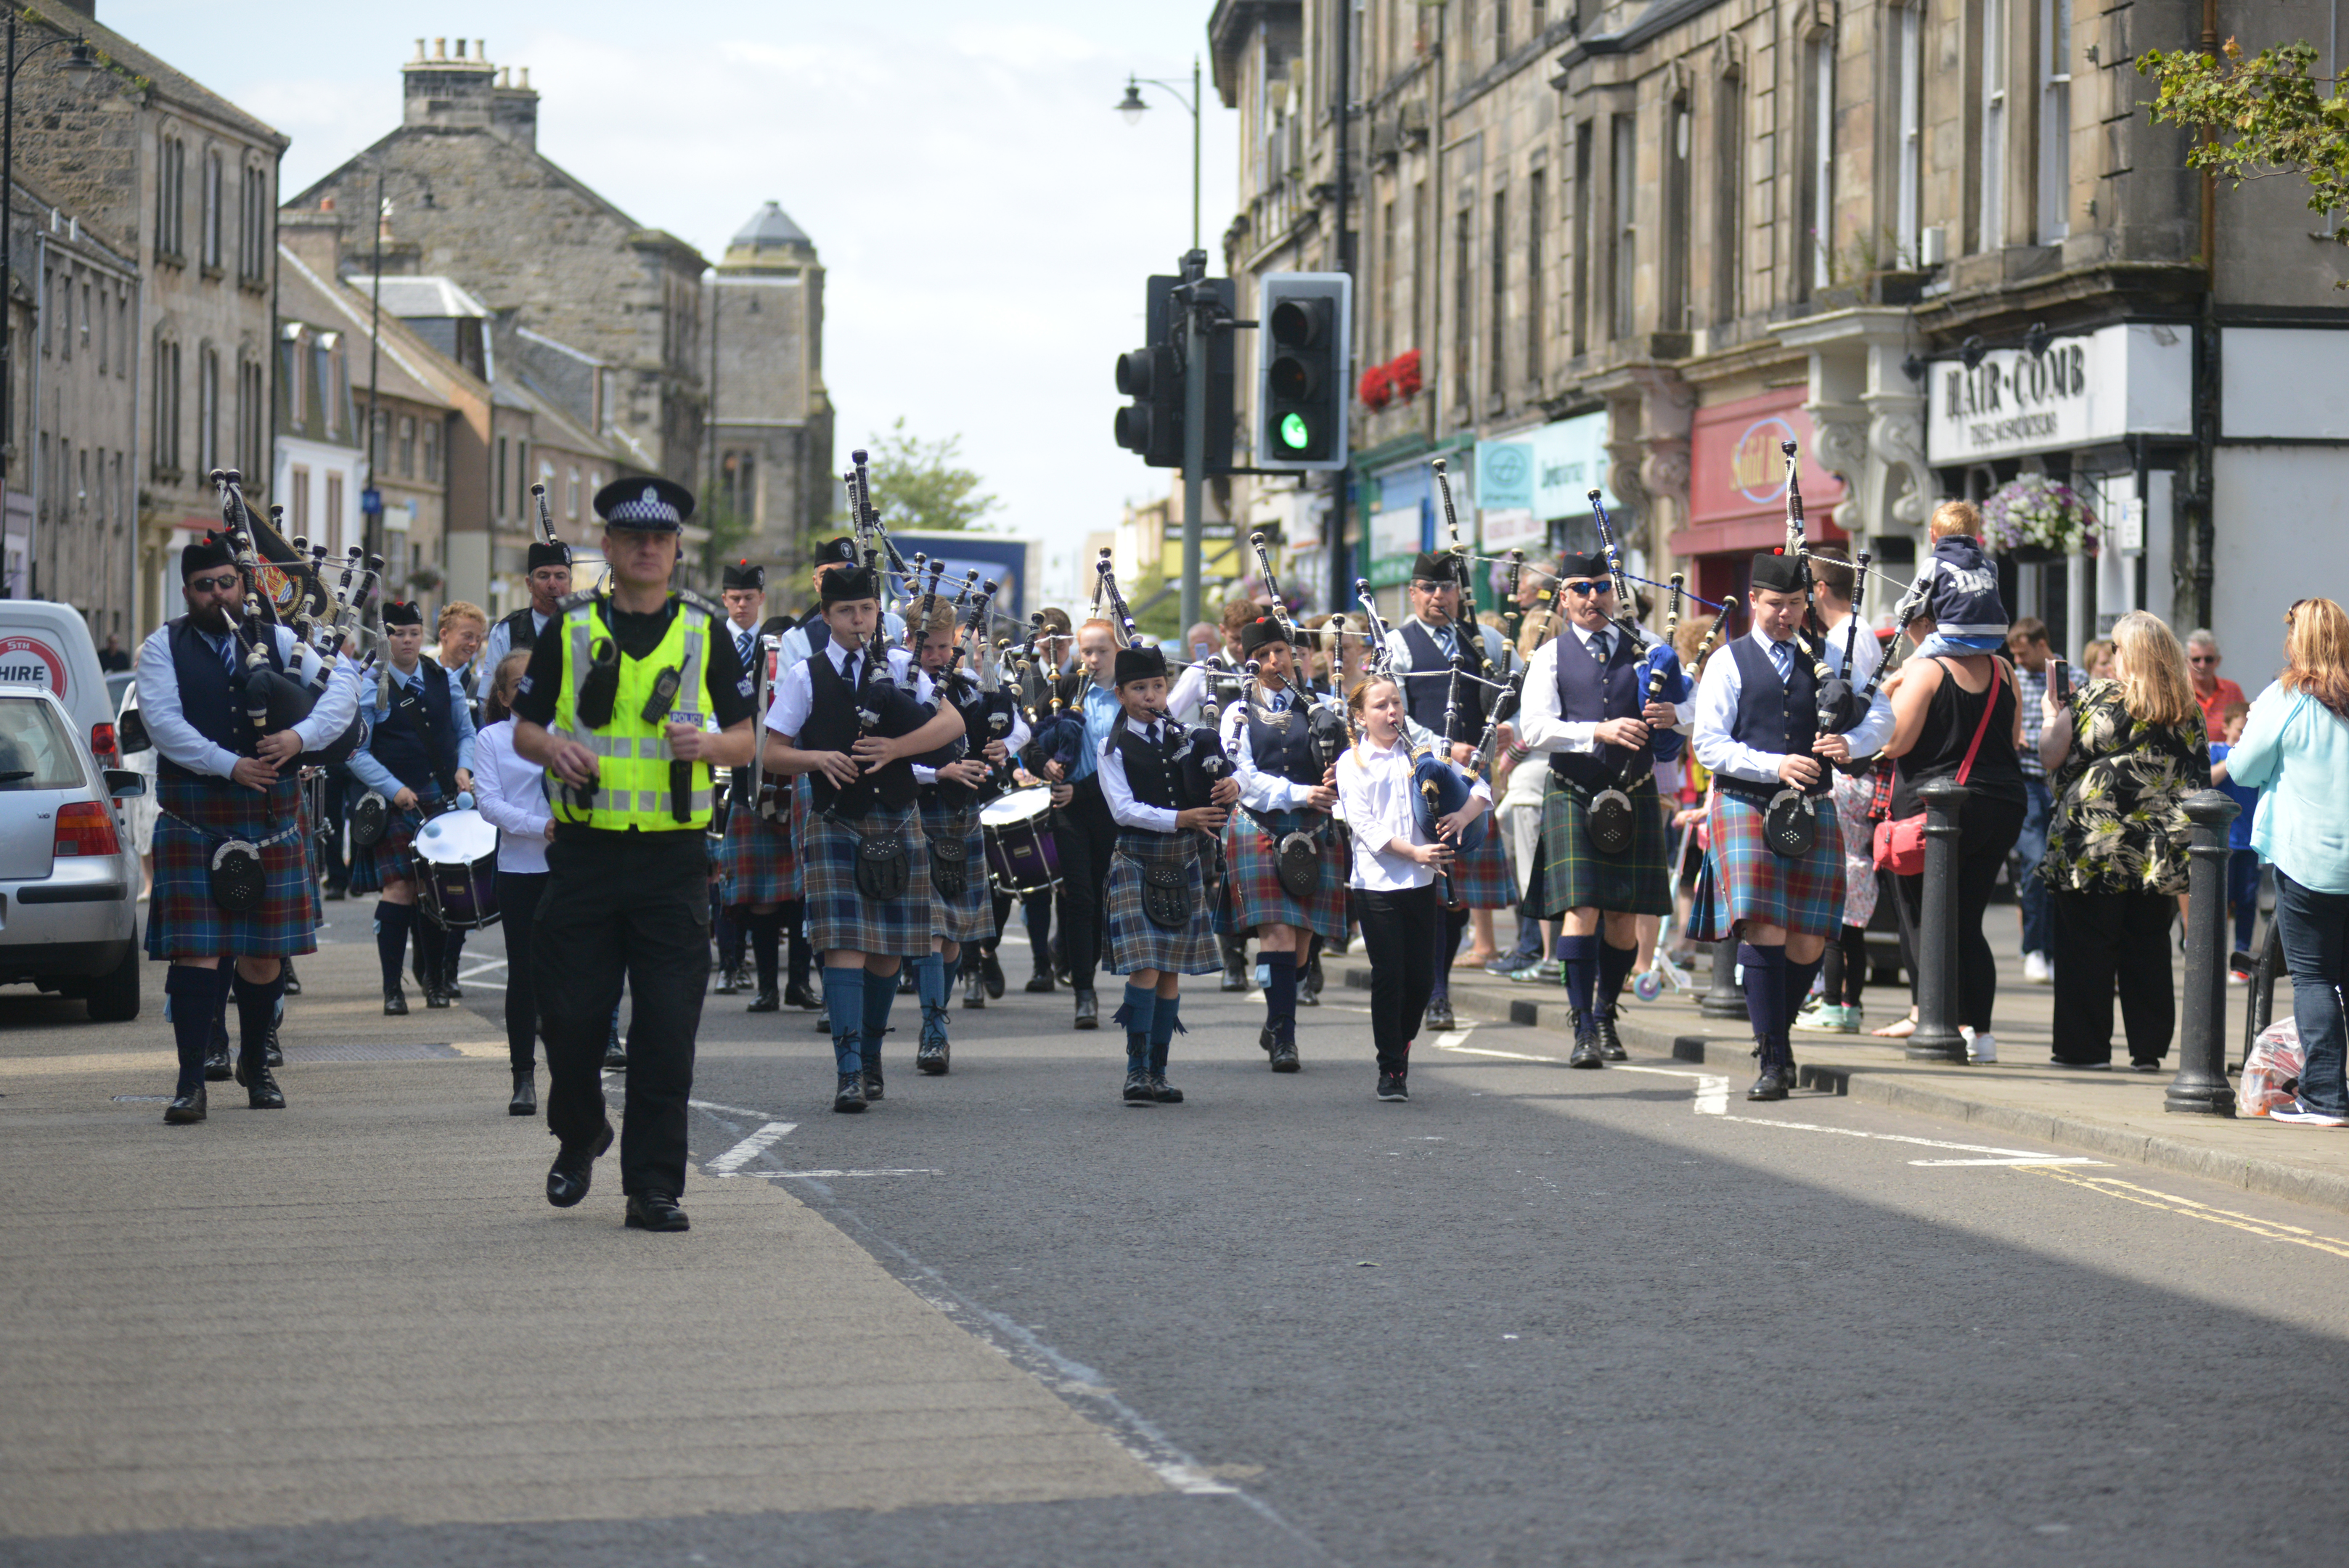 The event started with a parade from the Burgh Chambers.